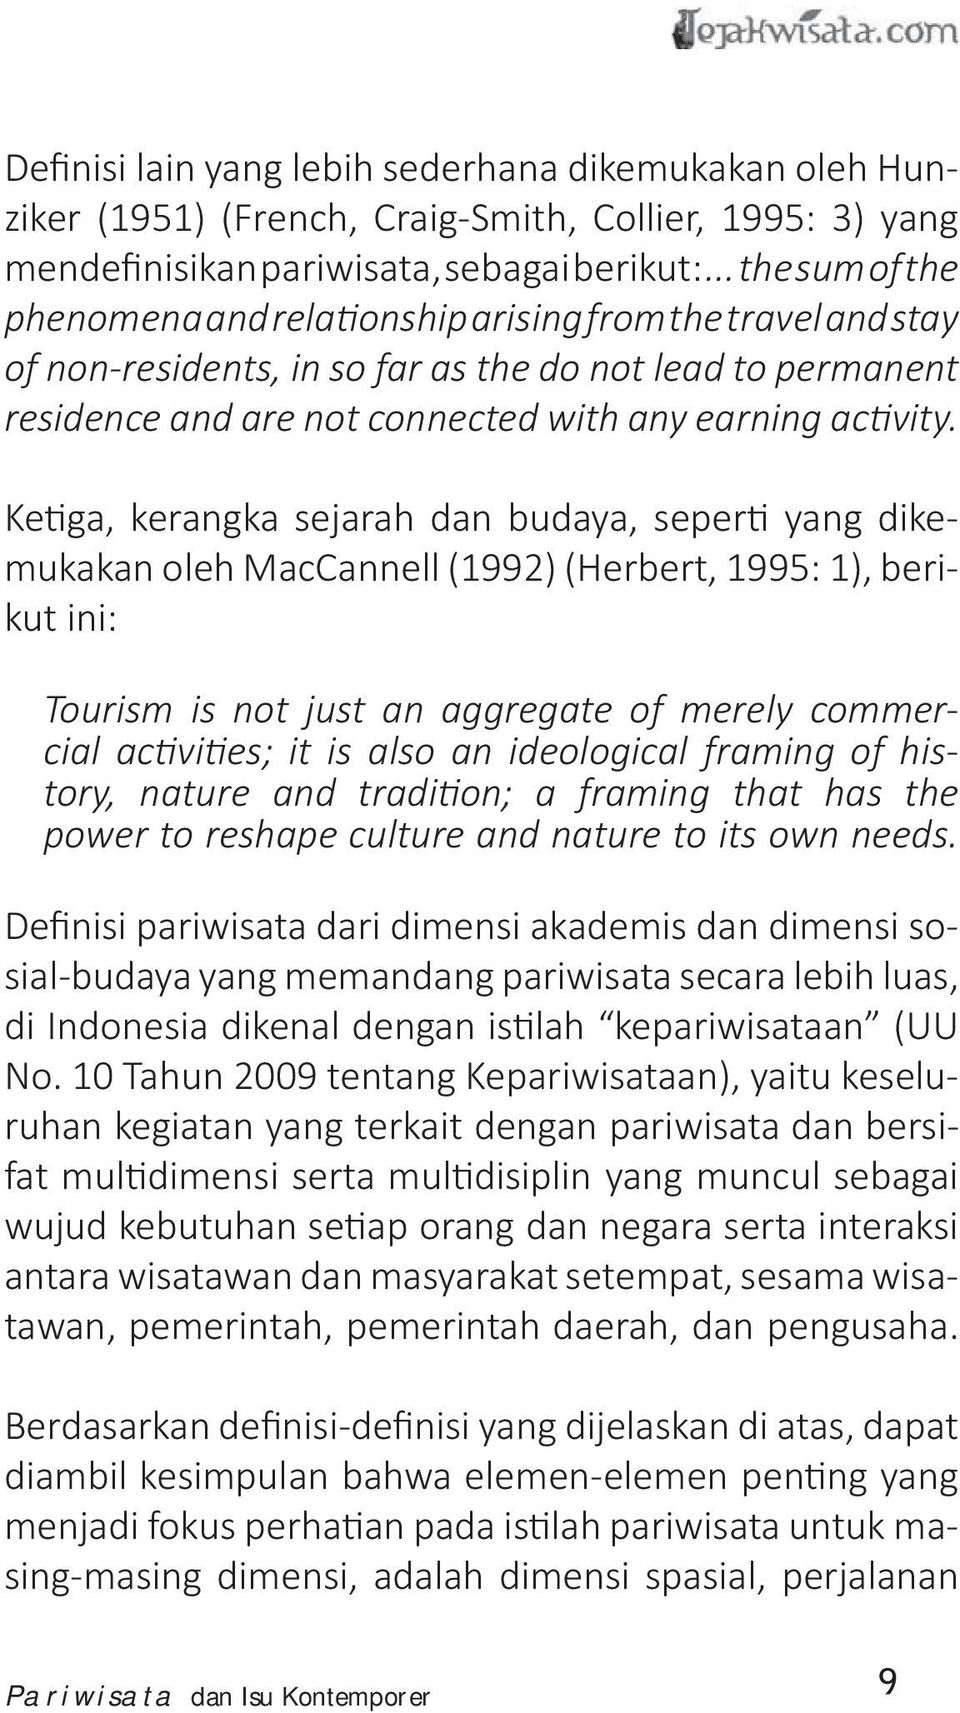 Ke ga, kerangka sejarah dan budaya, seper yang dikemukakan oleh MacCannell (1992) (Herbert, 1995: 1), berikut ini: Tourism is not just an aggregate of merely commercial ac vi es; it is also an